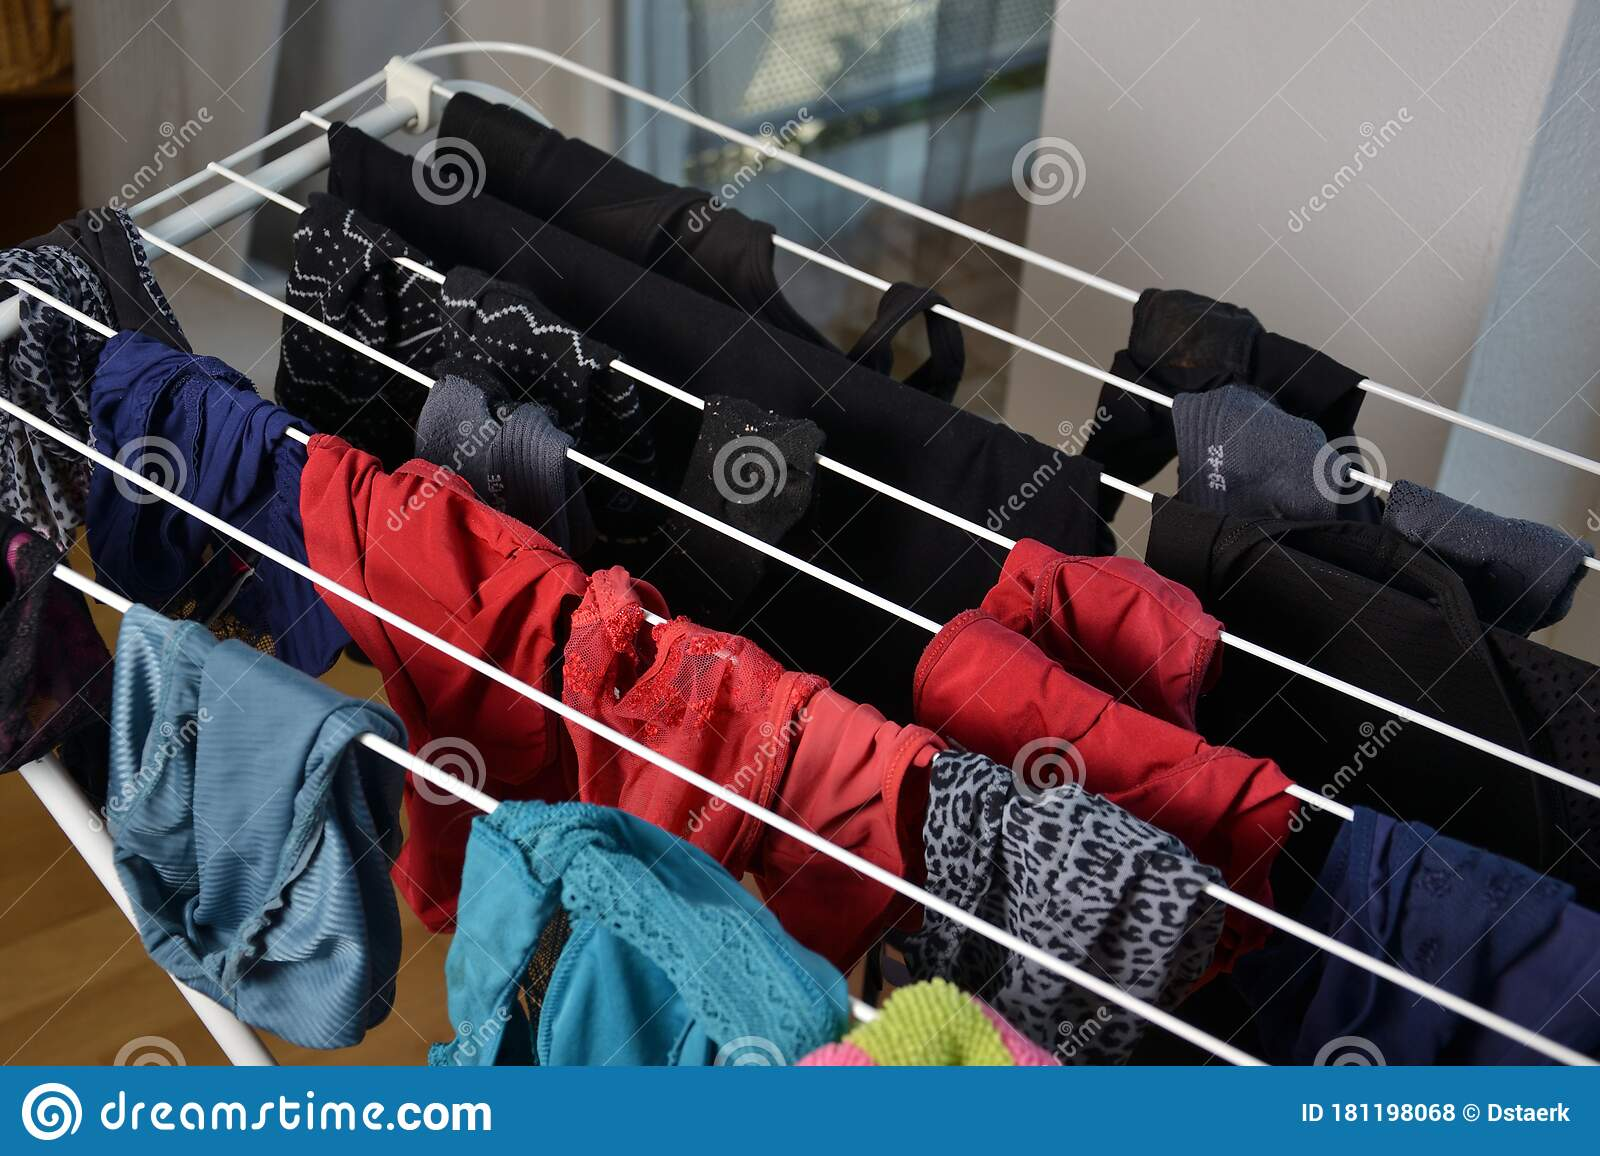 Different Freshly Clothes Hanging On The Clotheshorse For Drying Stock Photo Image Of Dryer Drier 181198068